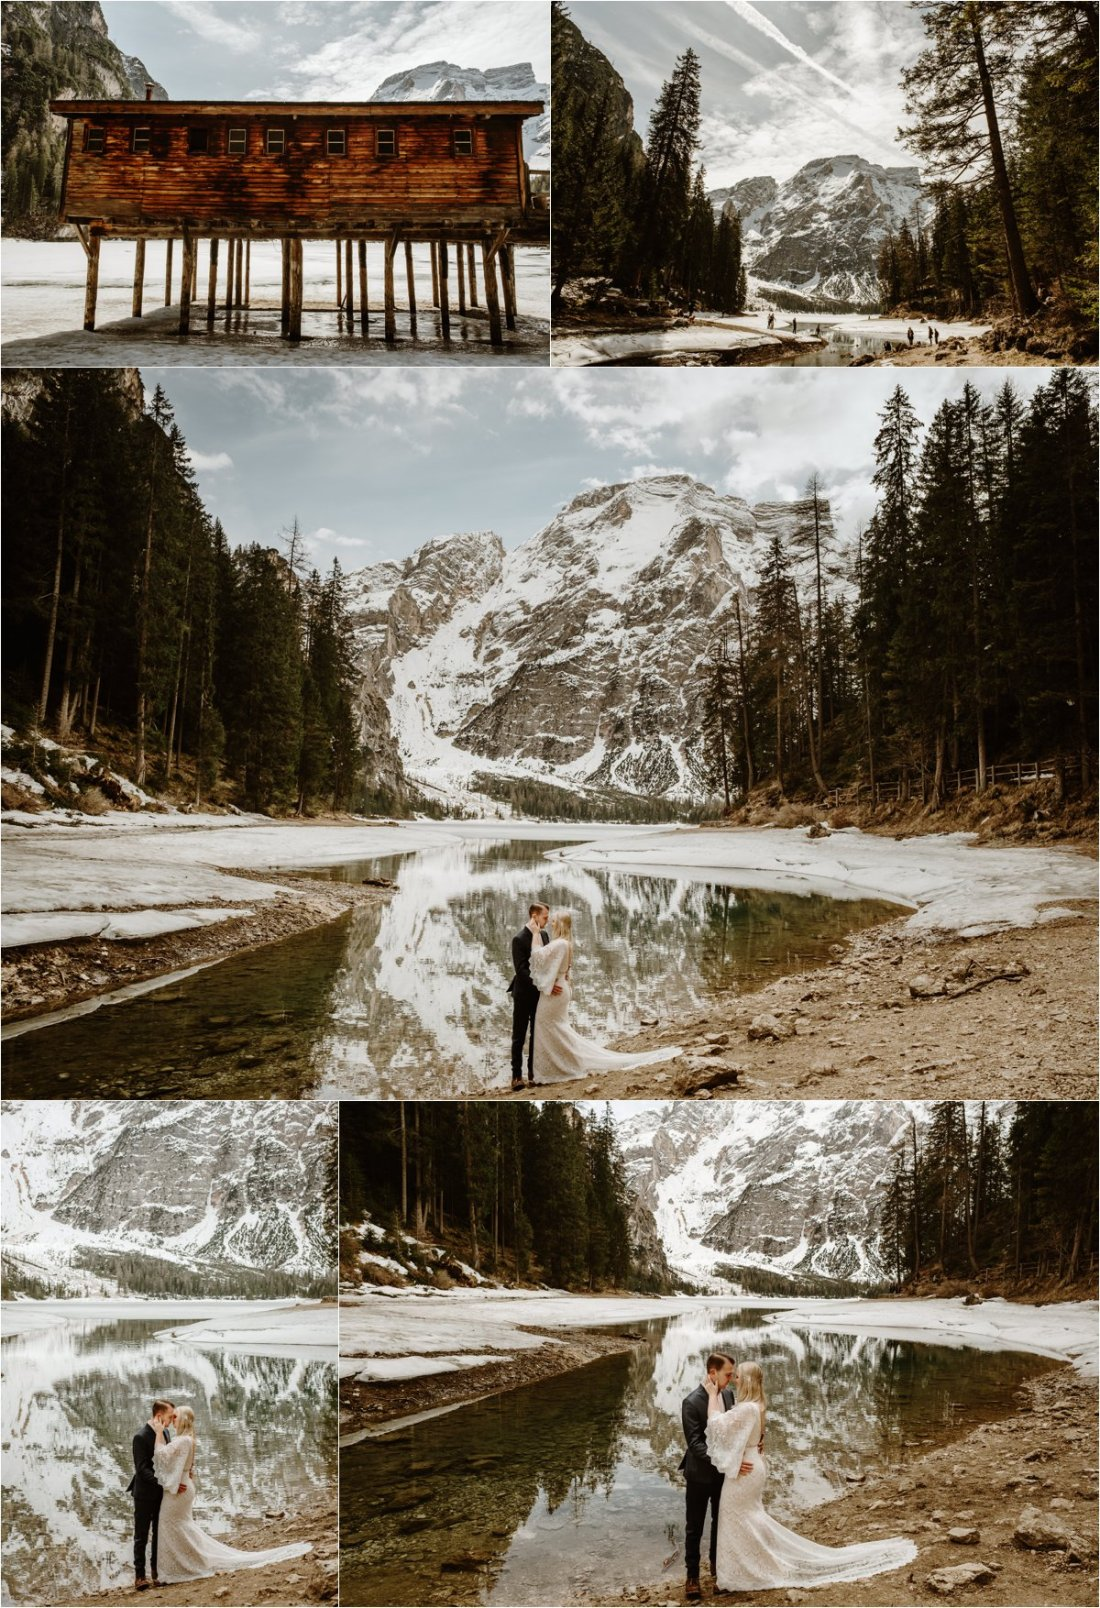 A small part of Lago di Braies lake in the Dolomites unfreezes after a long winter. Erika & Nathan enjoy the reflections of the mountains in the water on the day of their elopement in the Italian Alps. Photos by Wild Connections Photography - Alps & Dolomites Elopement Photographer